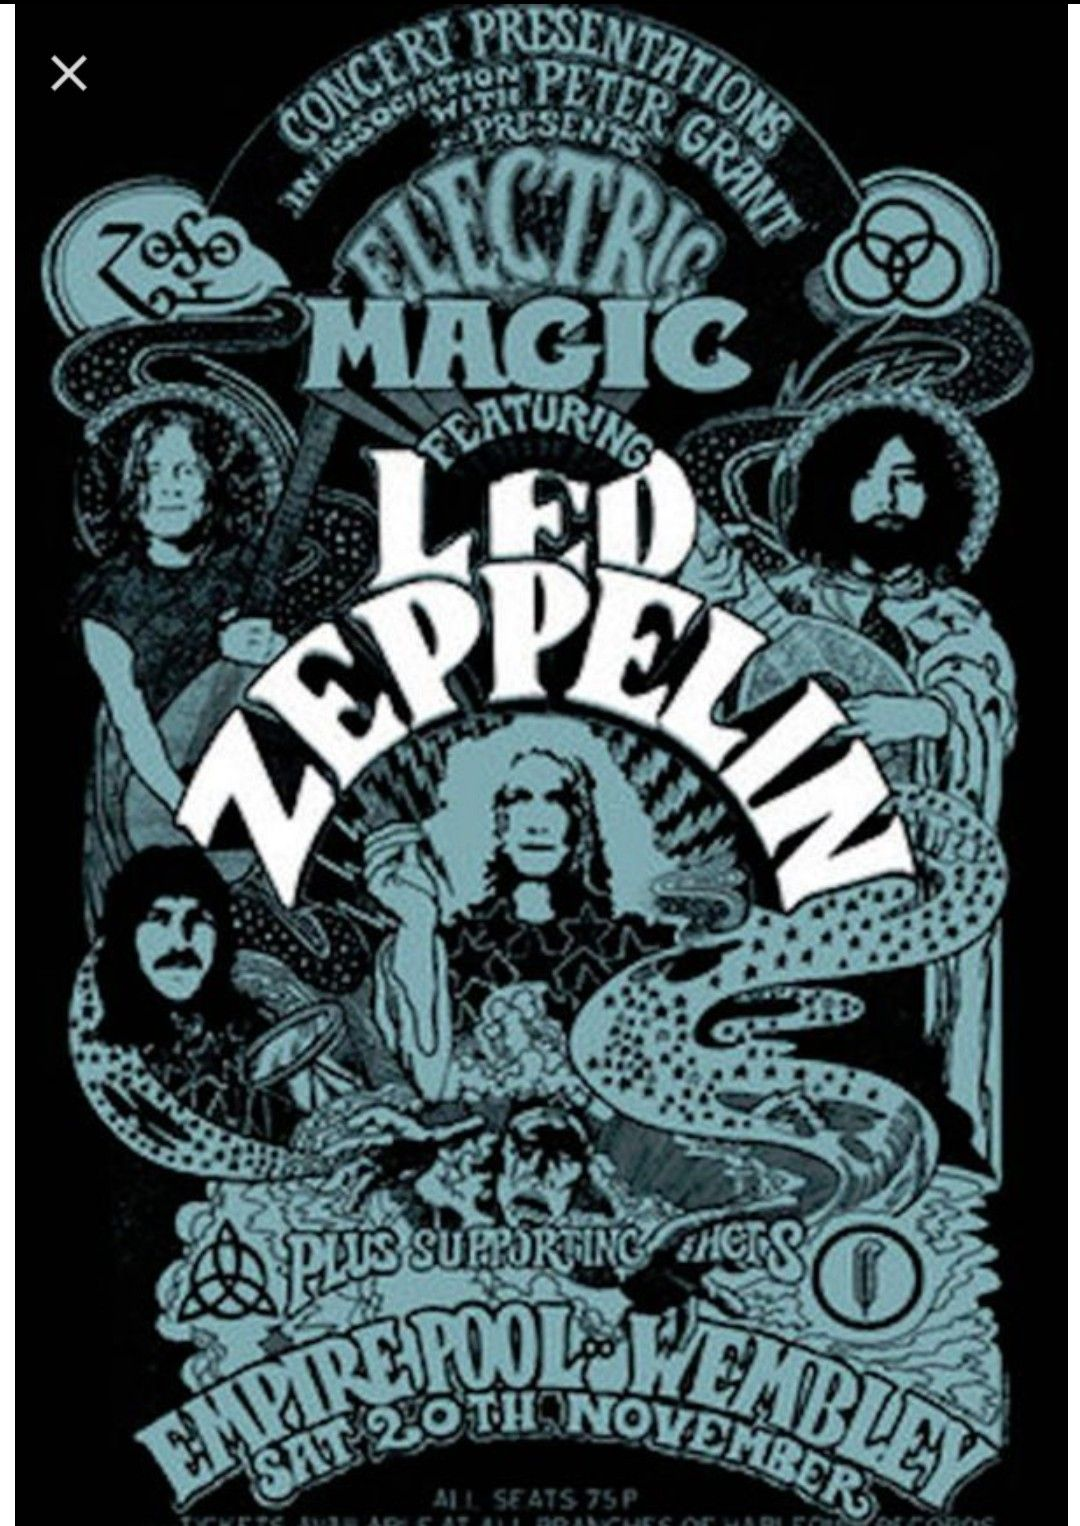 Pin By Anna Laney On Locandine Di Concerti Led Zeppelin Poster Vintage Music Posters Rock Posters